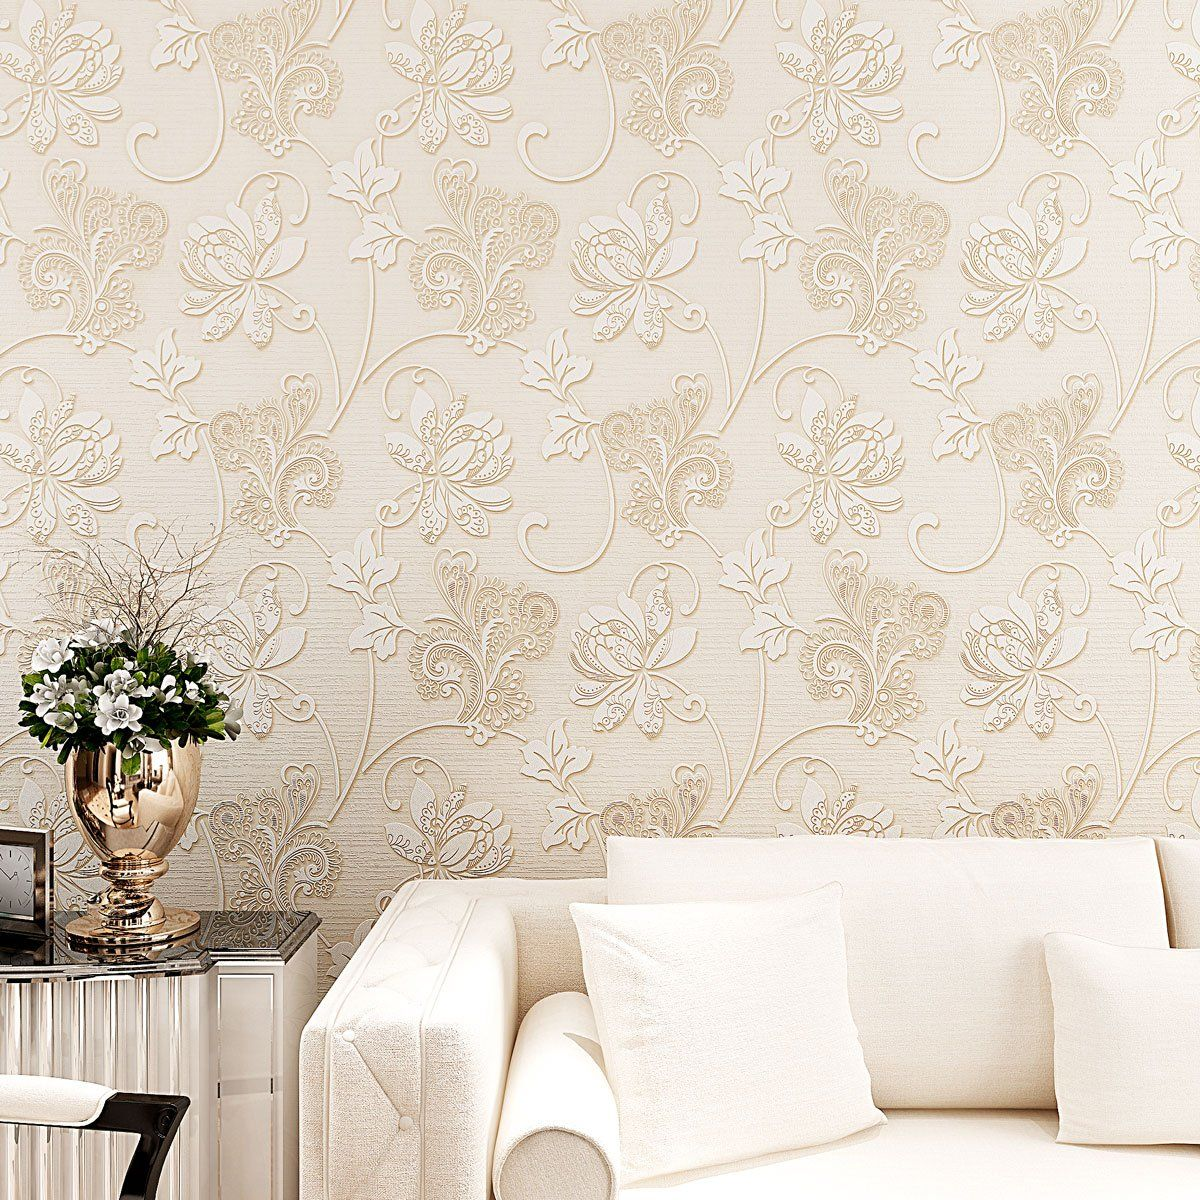 SICOHOME 3D Embossed Texture Flower Peel and Stick